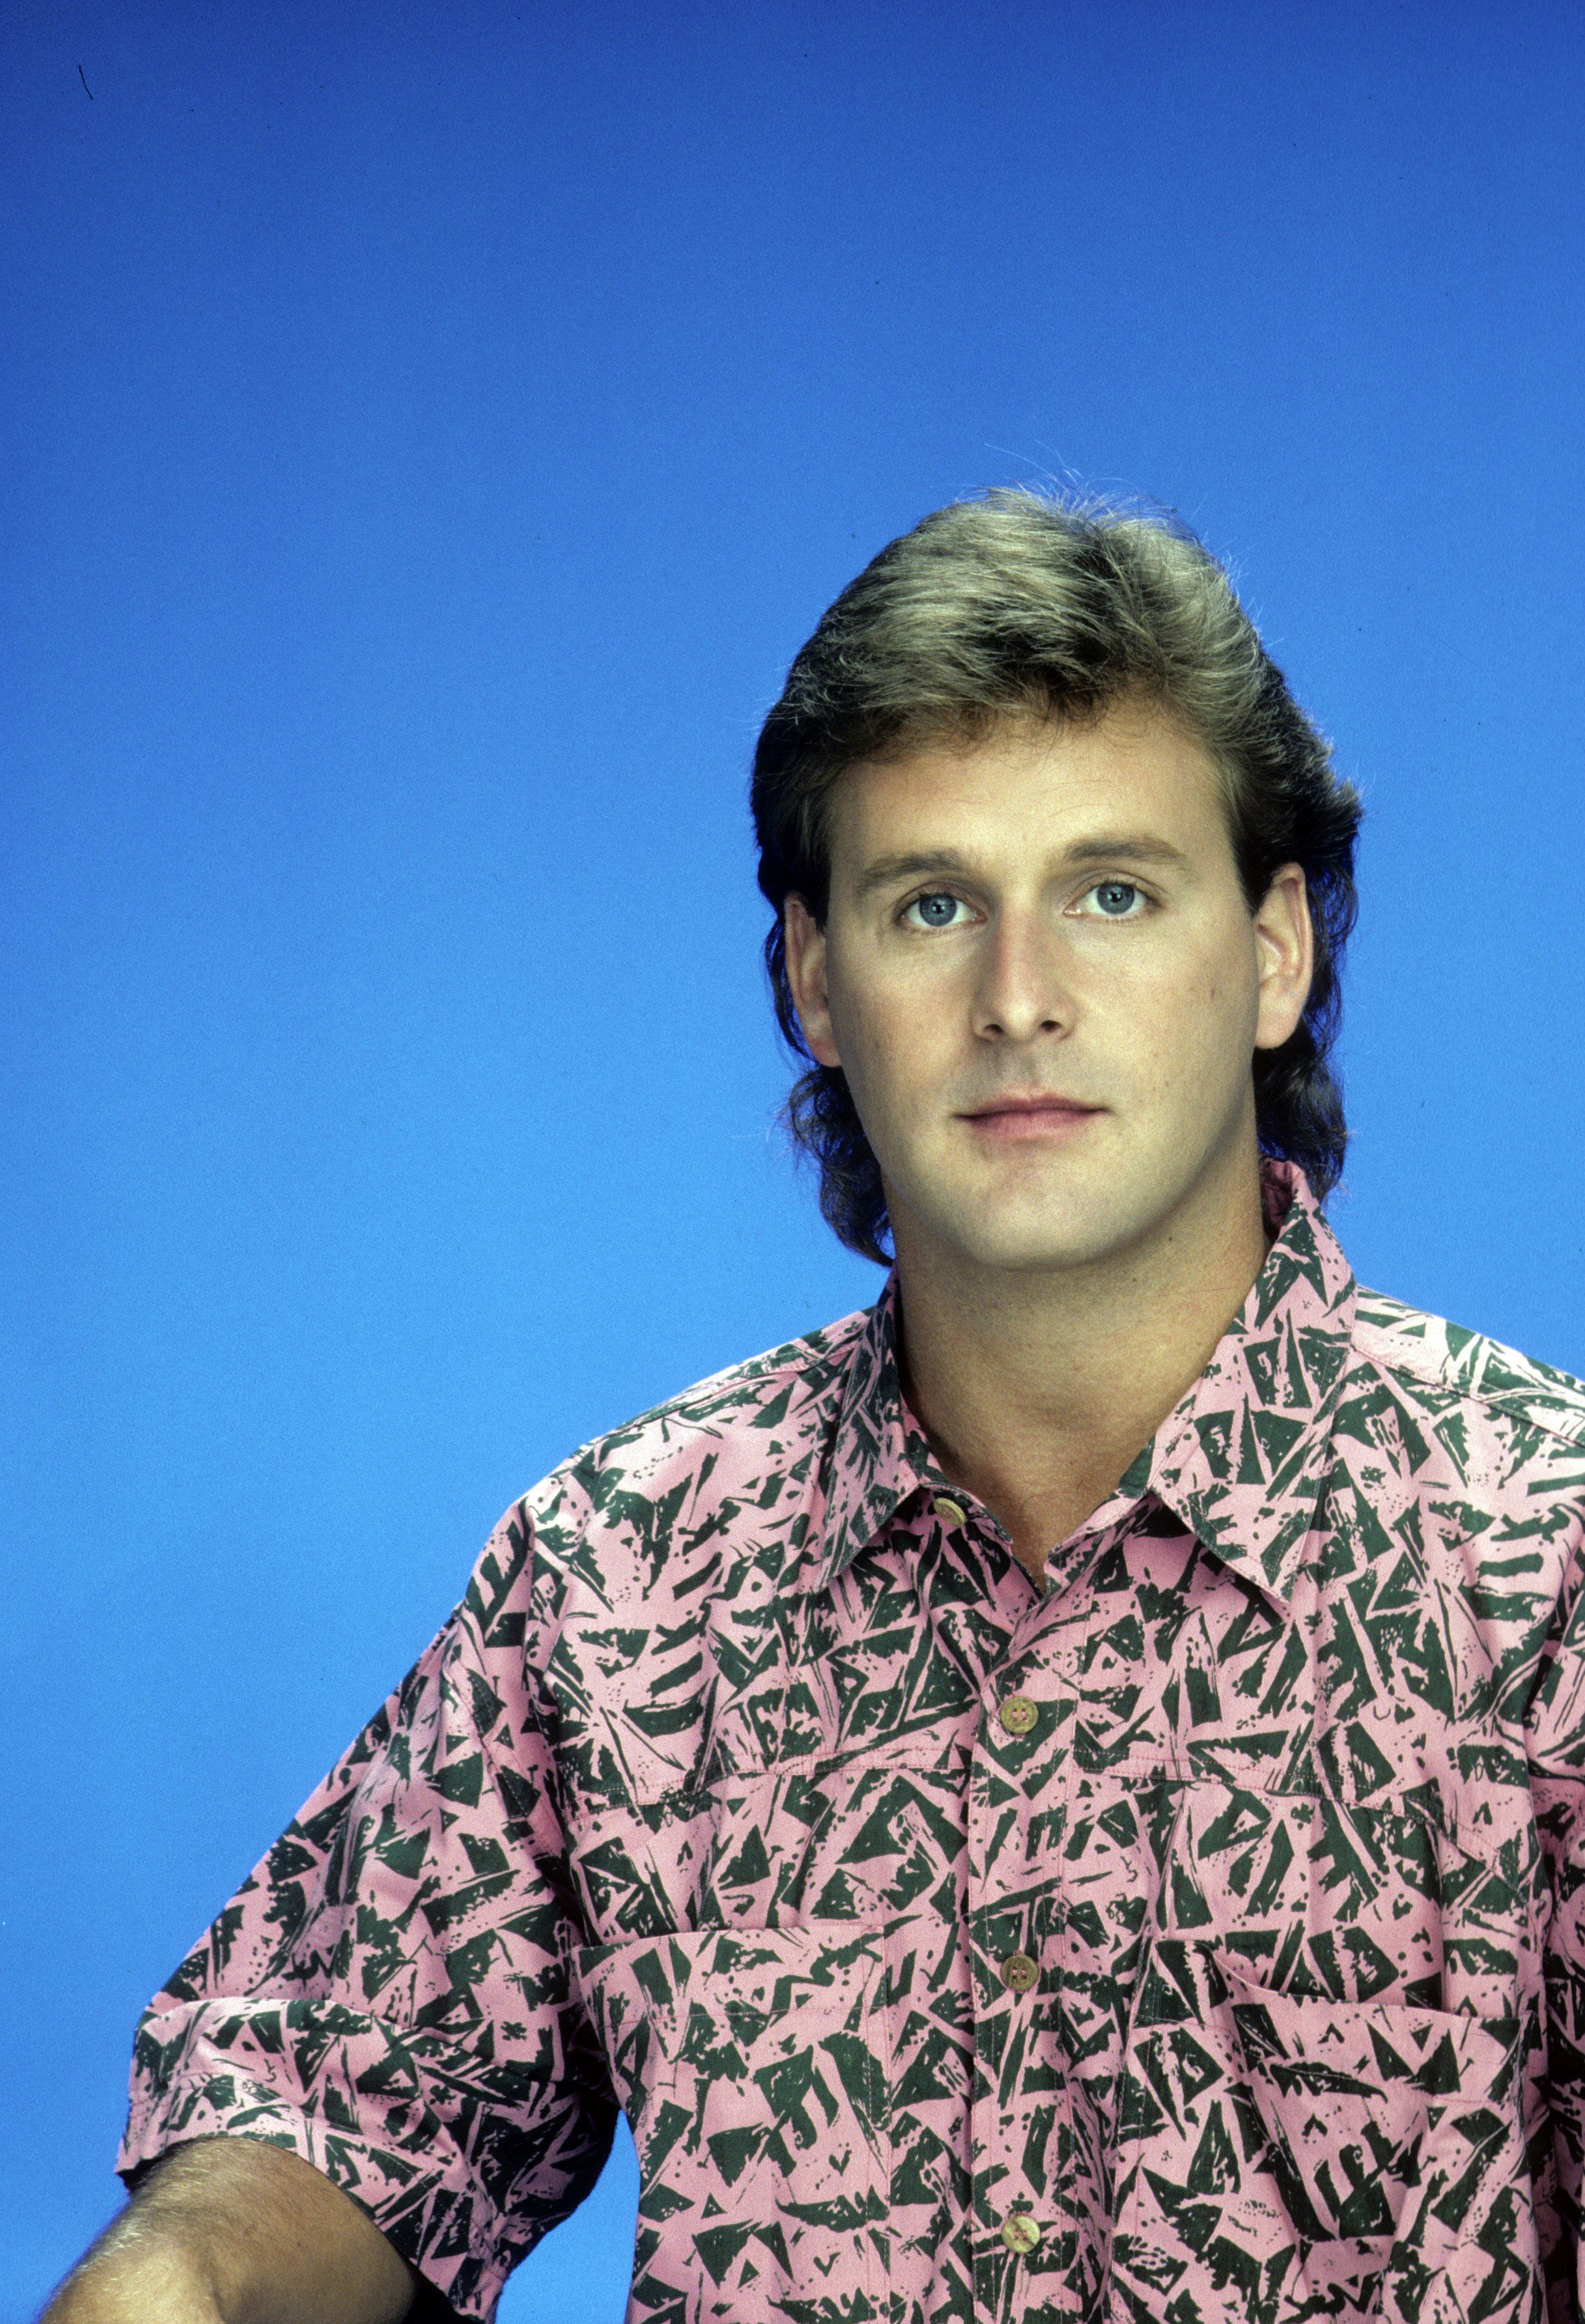 b11a13dcd8190 20 Bad  80s Fashion Trends - Style Mistakes We Made in the 1980s